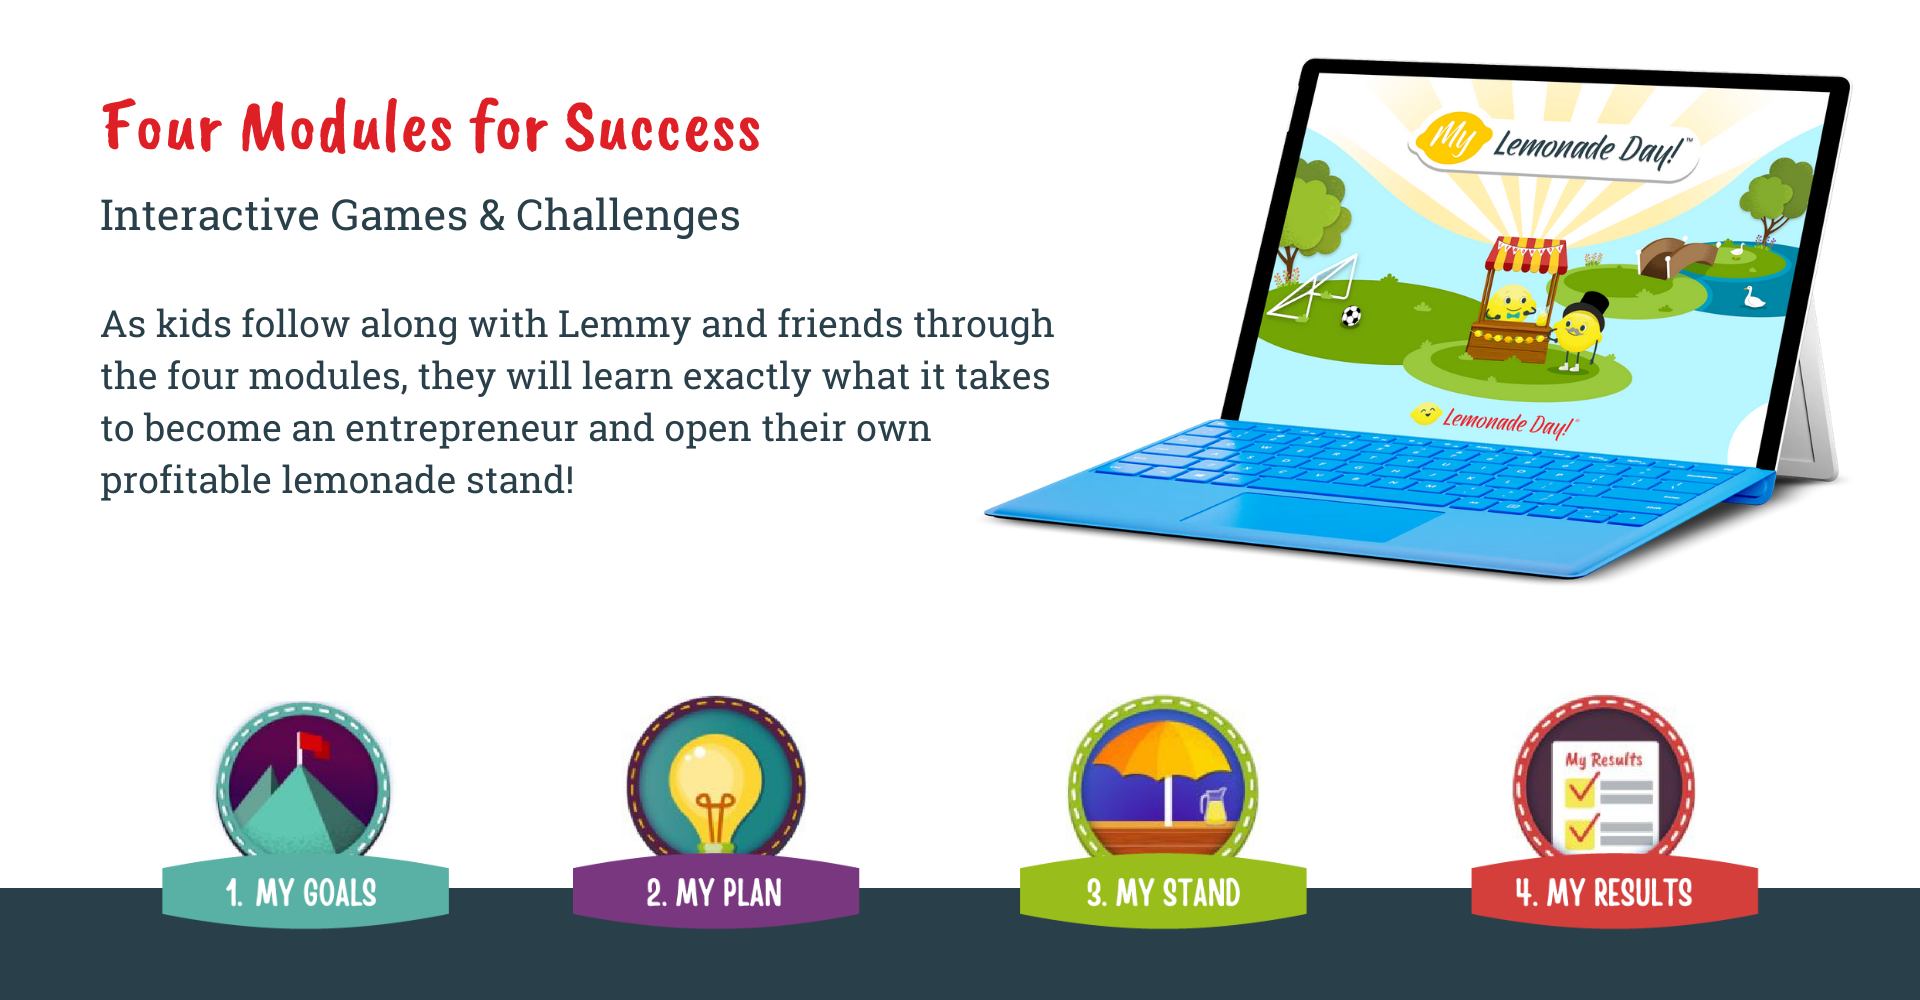 As kids follow along with Lemmy and friends through the four modules, they will learn exactly what it takes to become an entrepreneur and open their own profitable lemonade stand! Interactive Games & Challenges Four Modules for Success 1. my goals 2. my plan 3. my stand 4. my results lemonade day